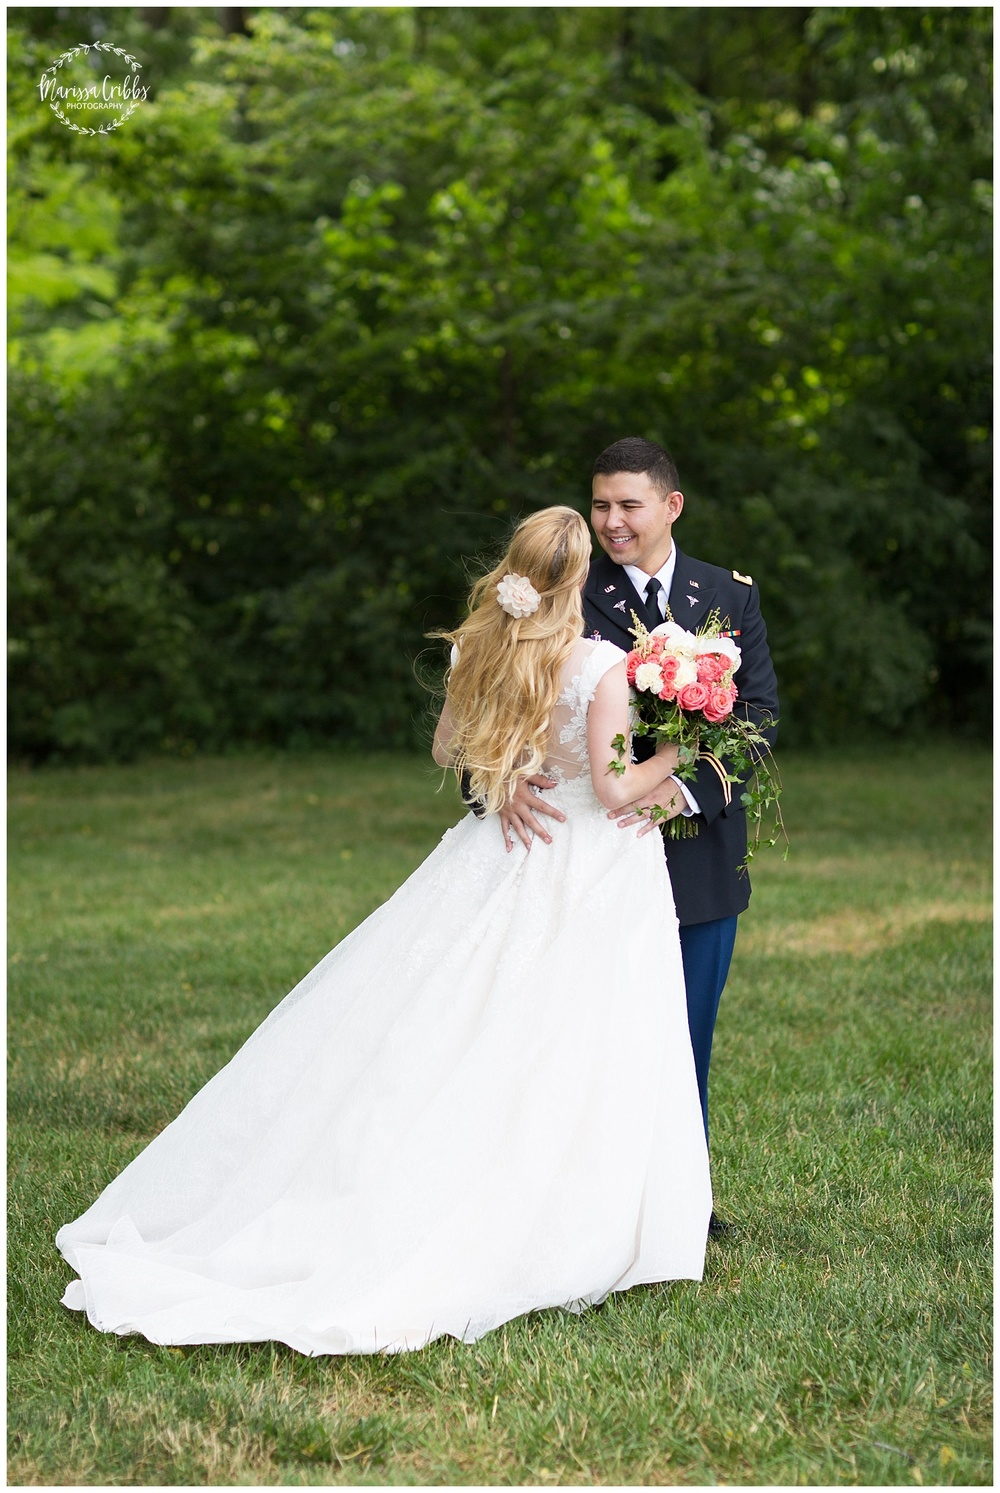 Jimenez Wedding | Marissa Cribbs Photography_0287.jpg